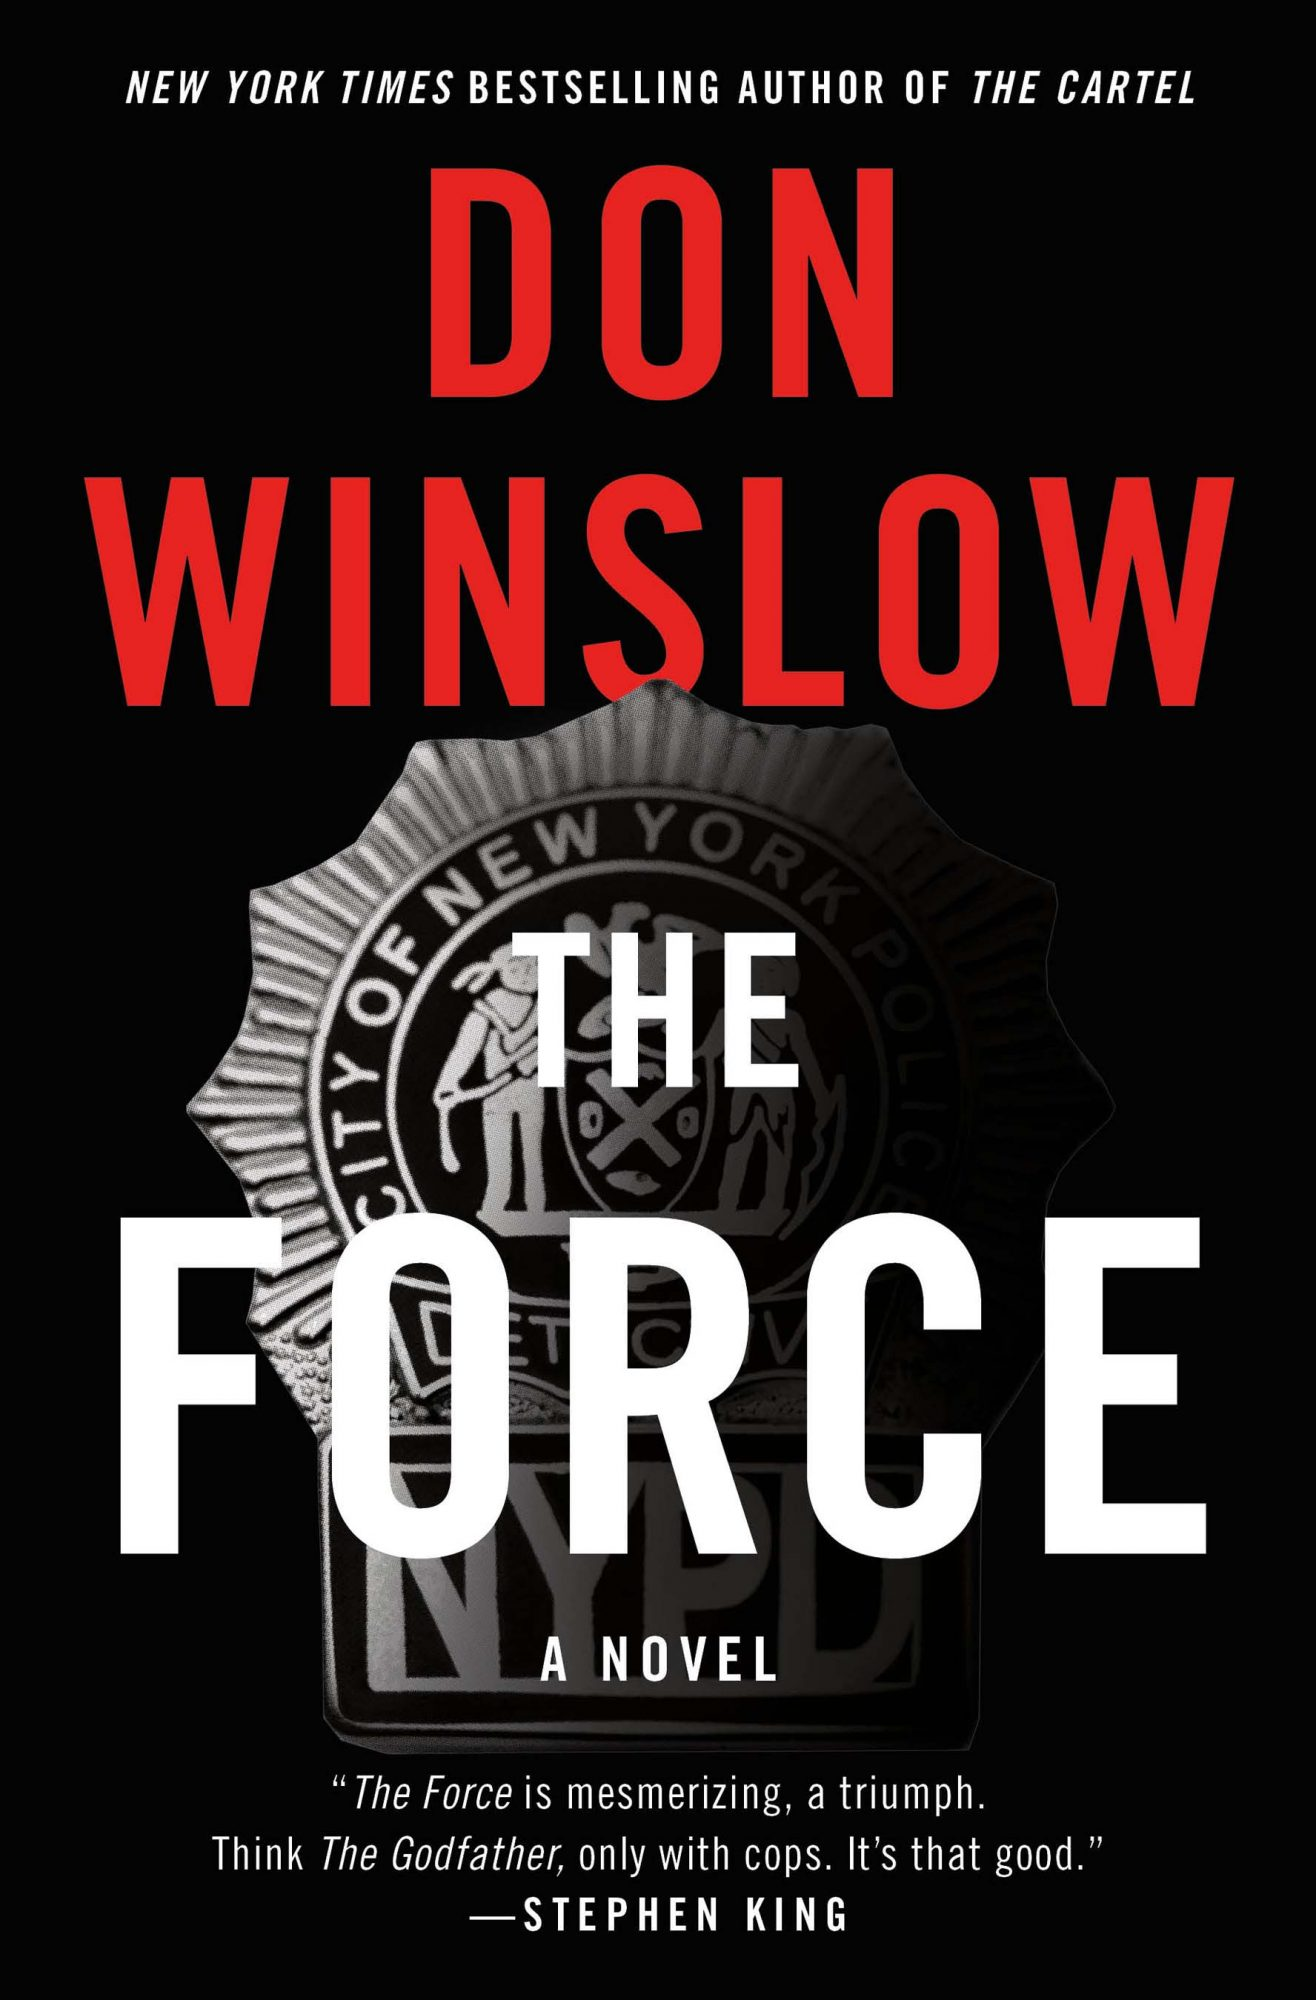 The Force  (6/20/2017)by Don Winslow